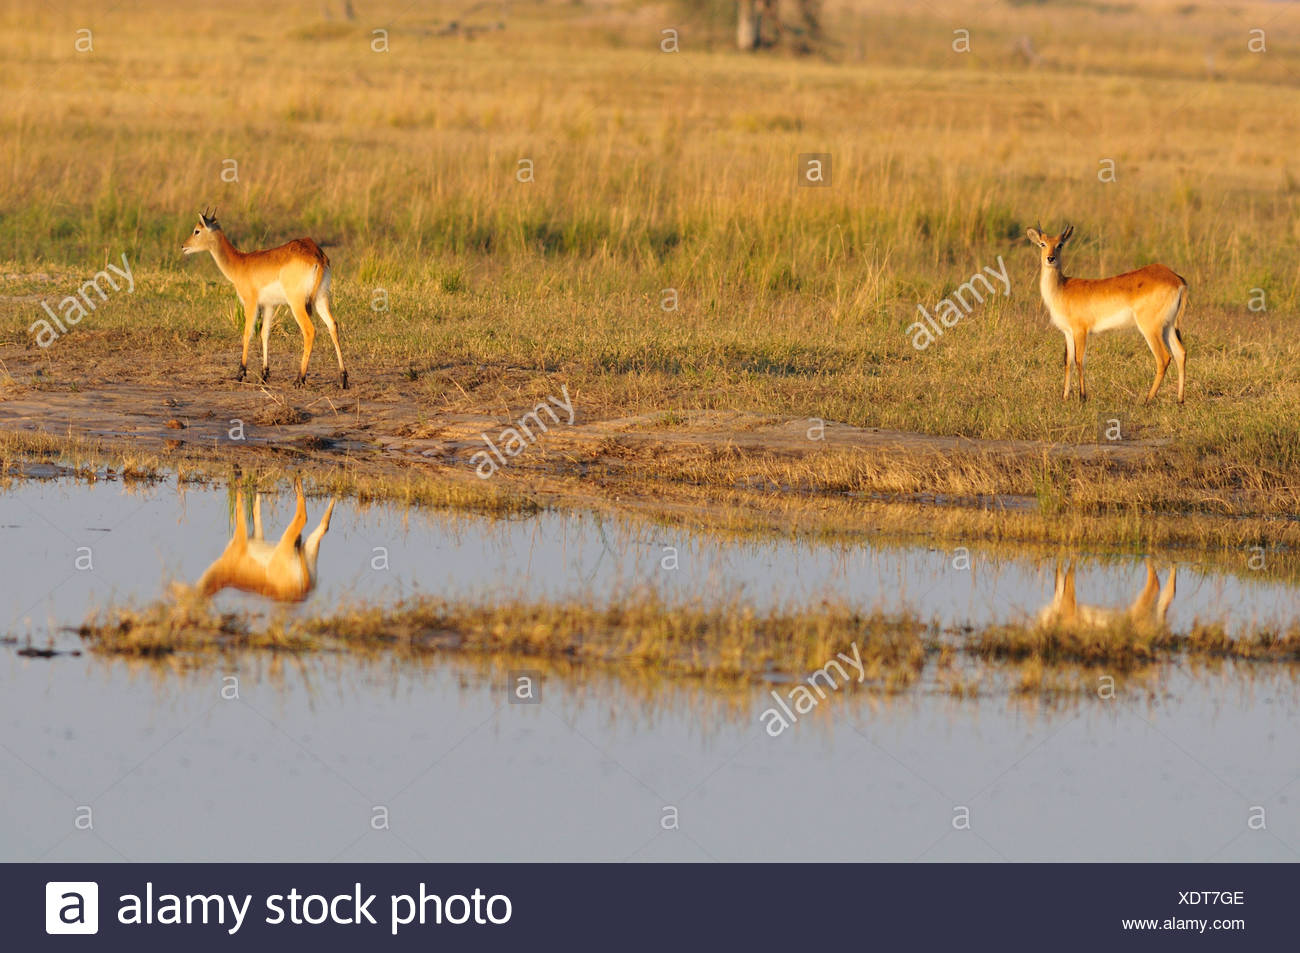 Africa, Botswana, Chobe, National Park, lechwe, antelope, animal, wildlife, wild - Stock Image